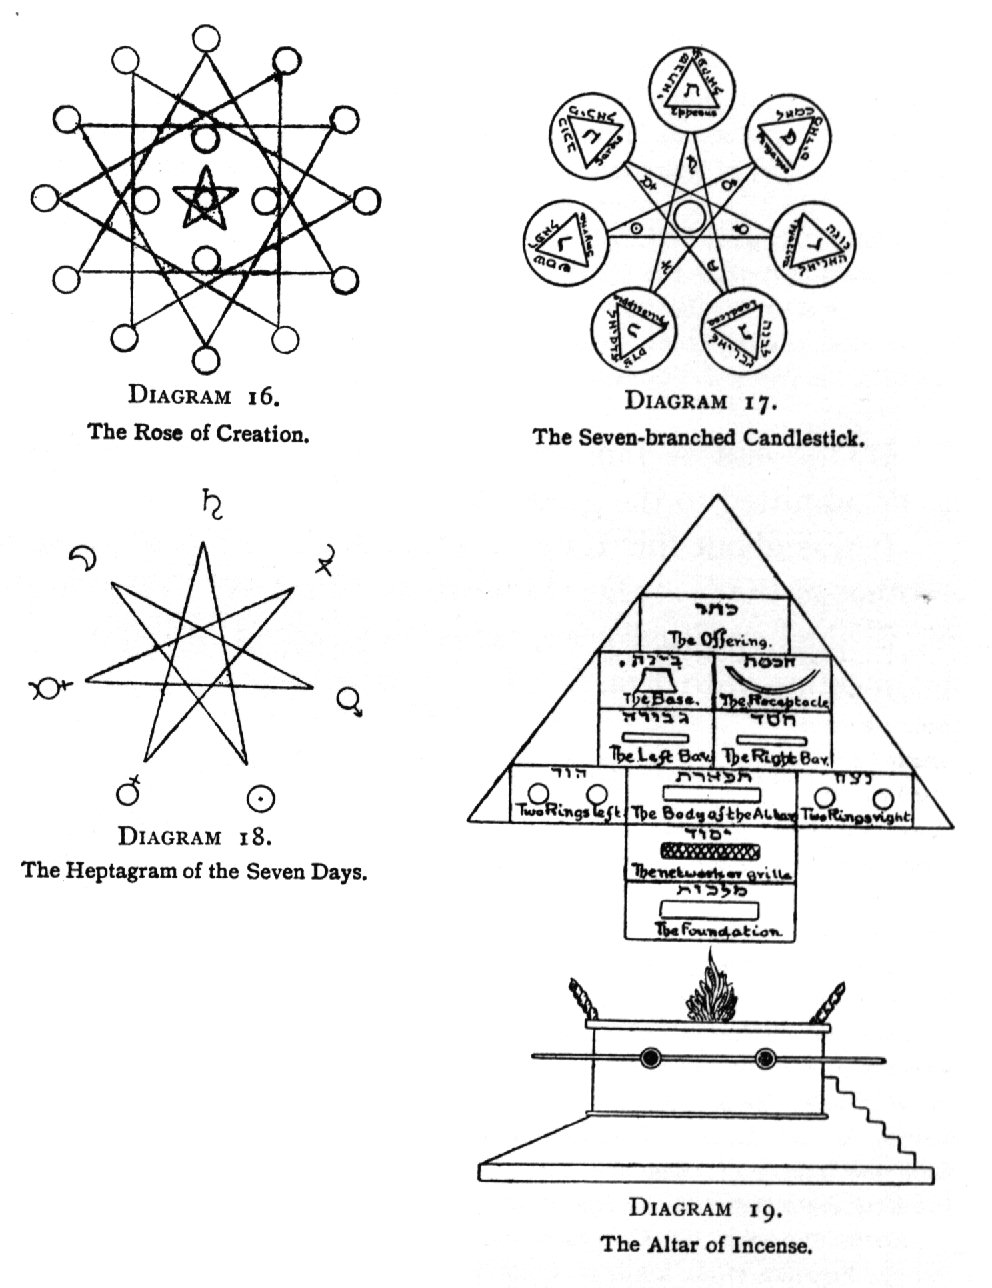 Diagram 16. The Rose of Creation. / Diagram 17. The Seven-branched Candlestick. / Diagram 18. The Heptagram of the Seven Days. / Diagram 19. The Altar of Incense.